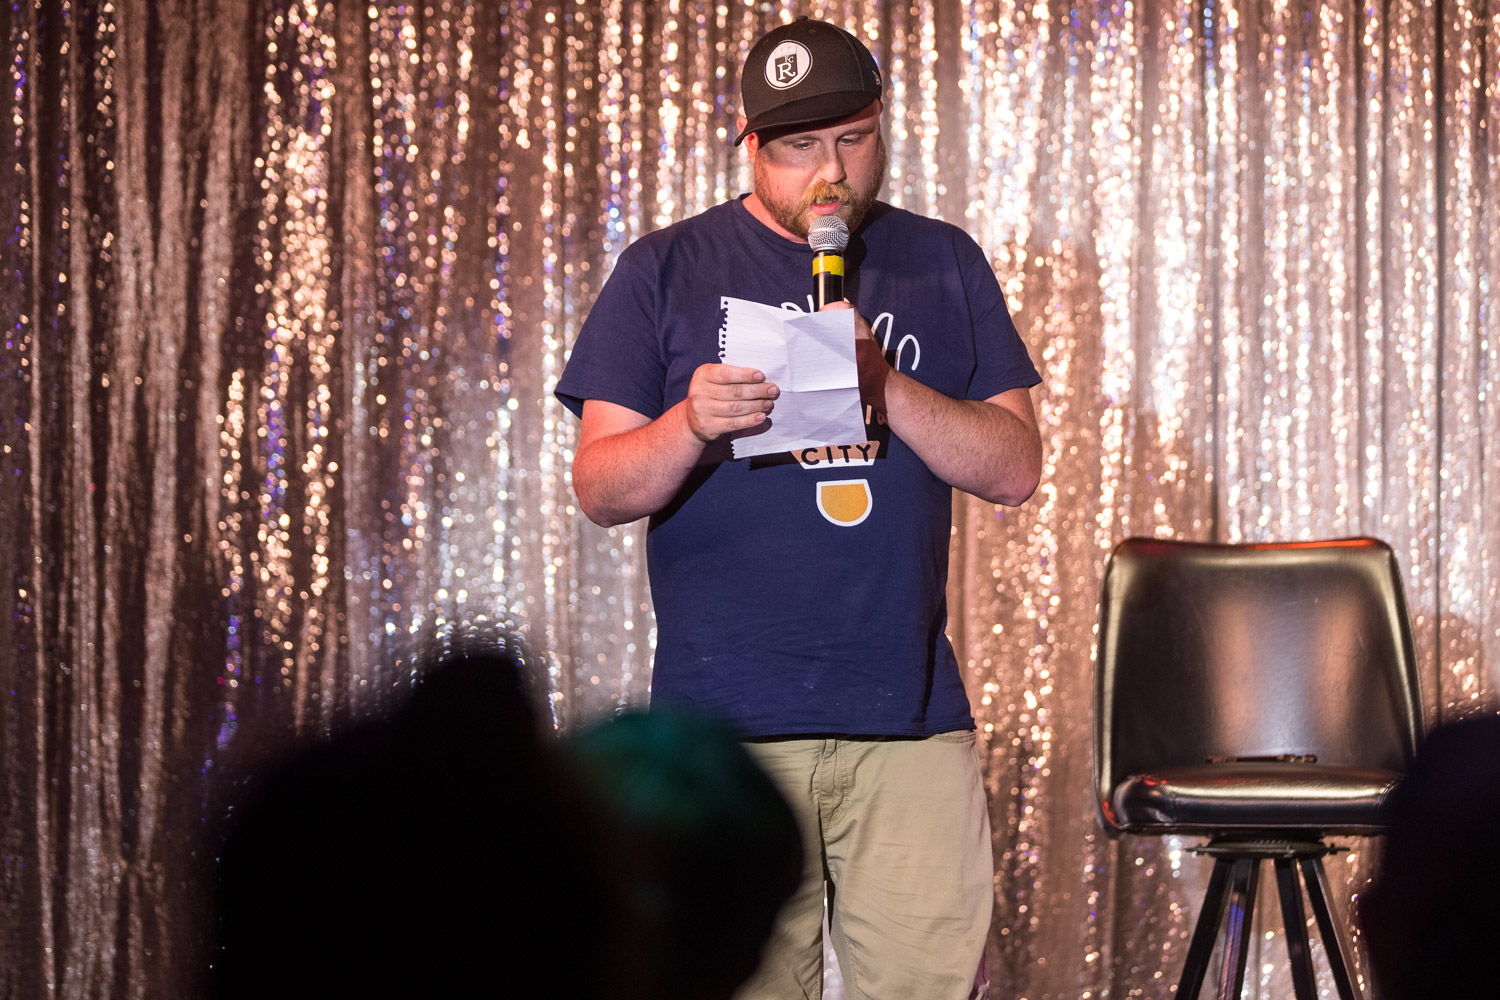 Comedian Kyle Hopkins during the Comedy Cabaret at Missie B's in Kansas City, MO on June 29, 2021